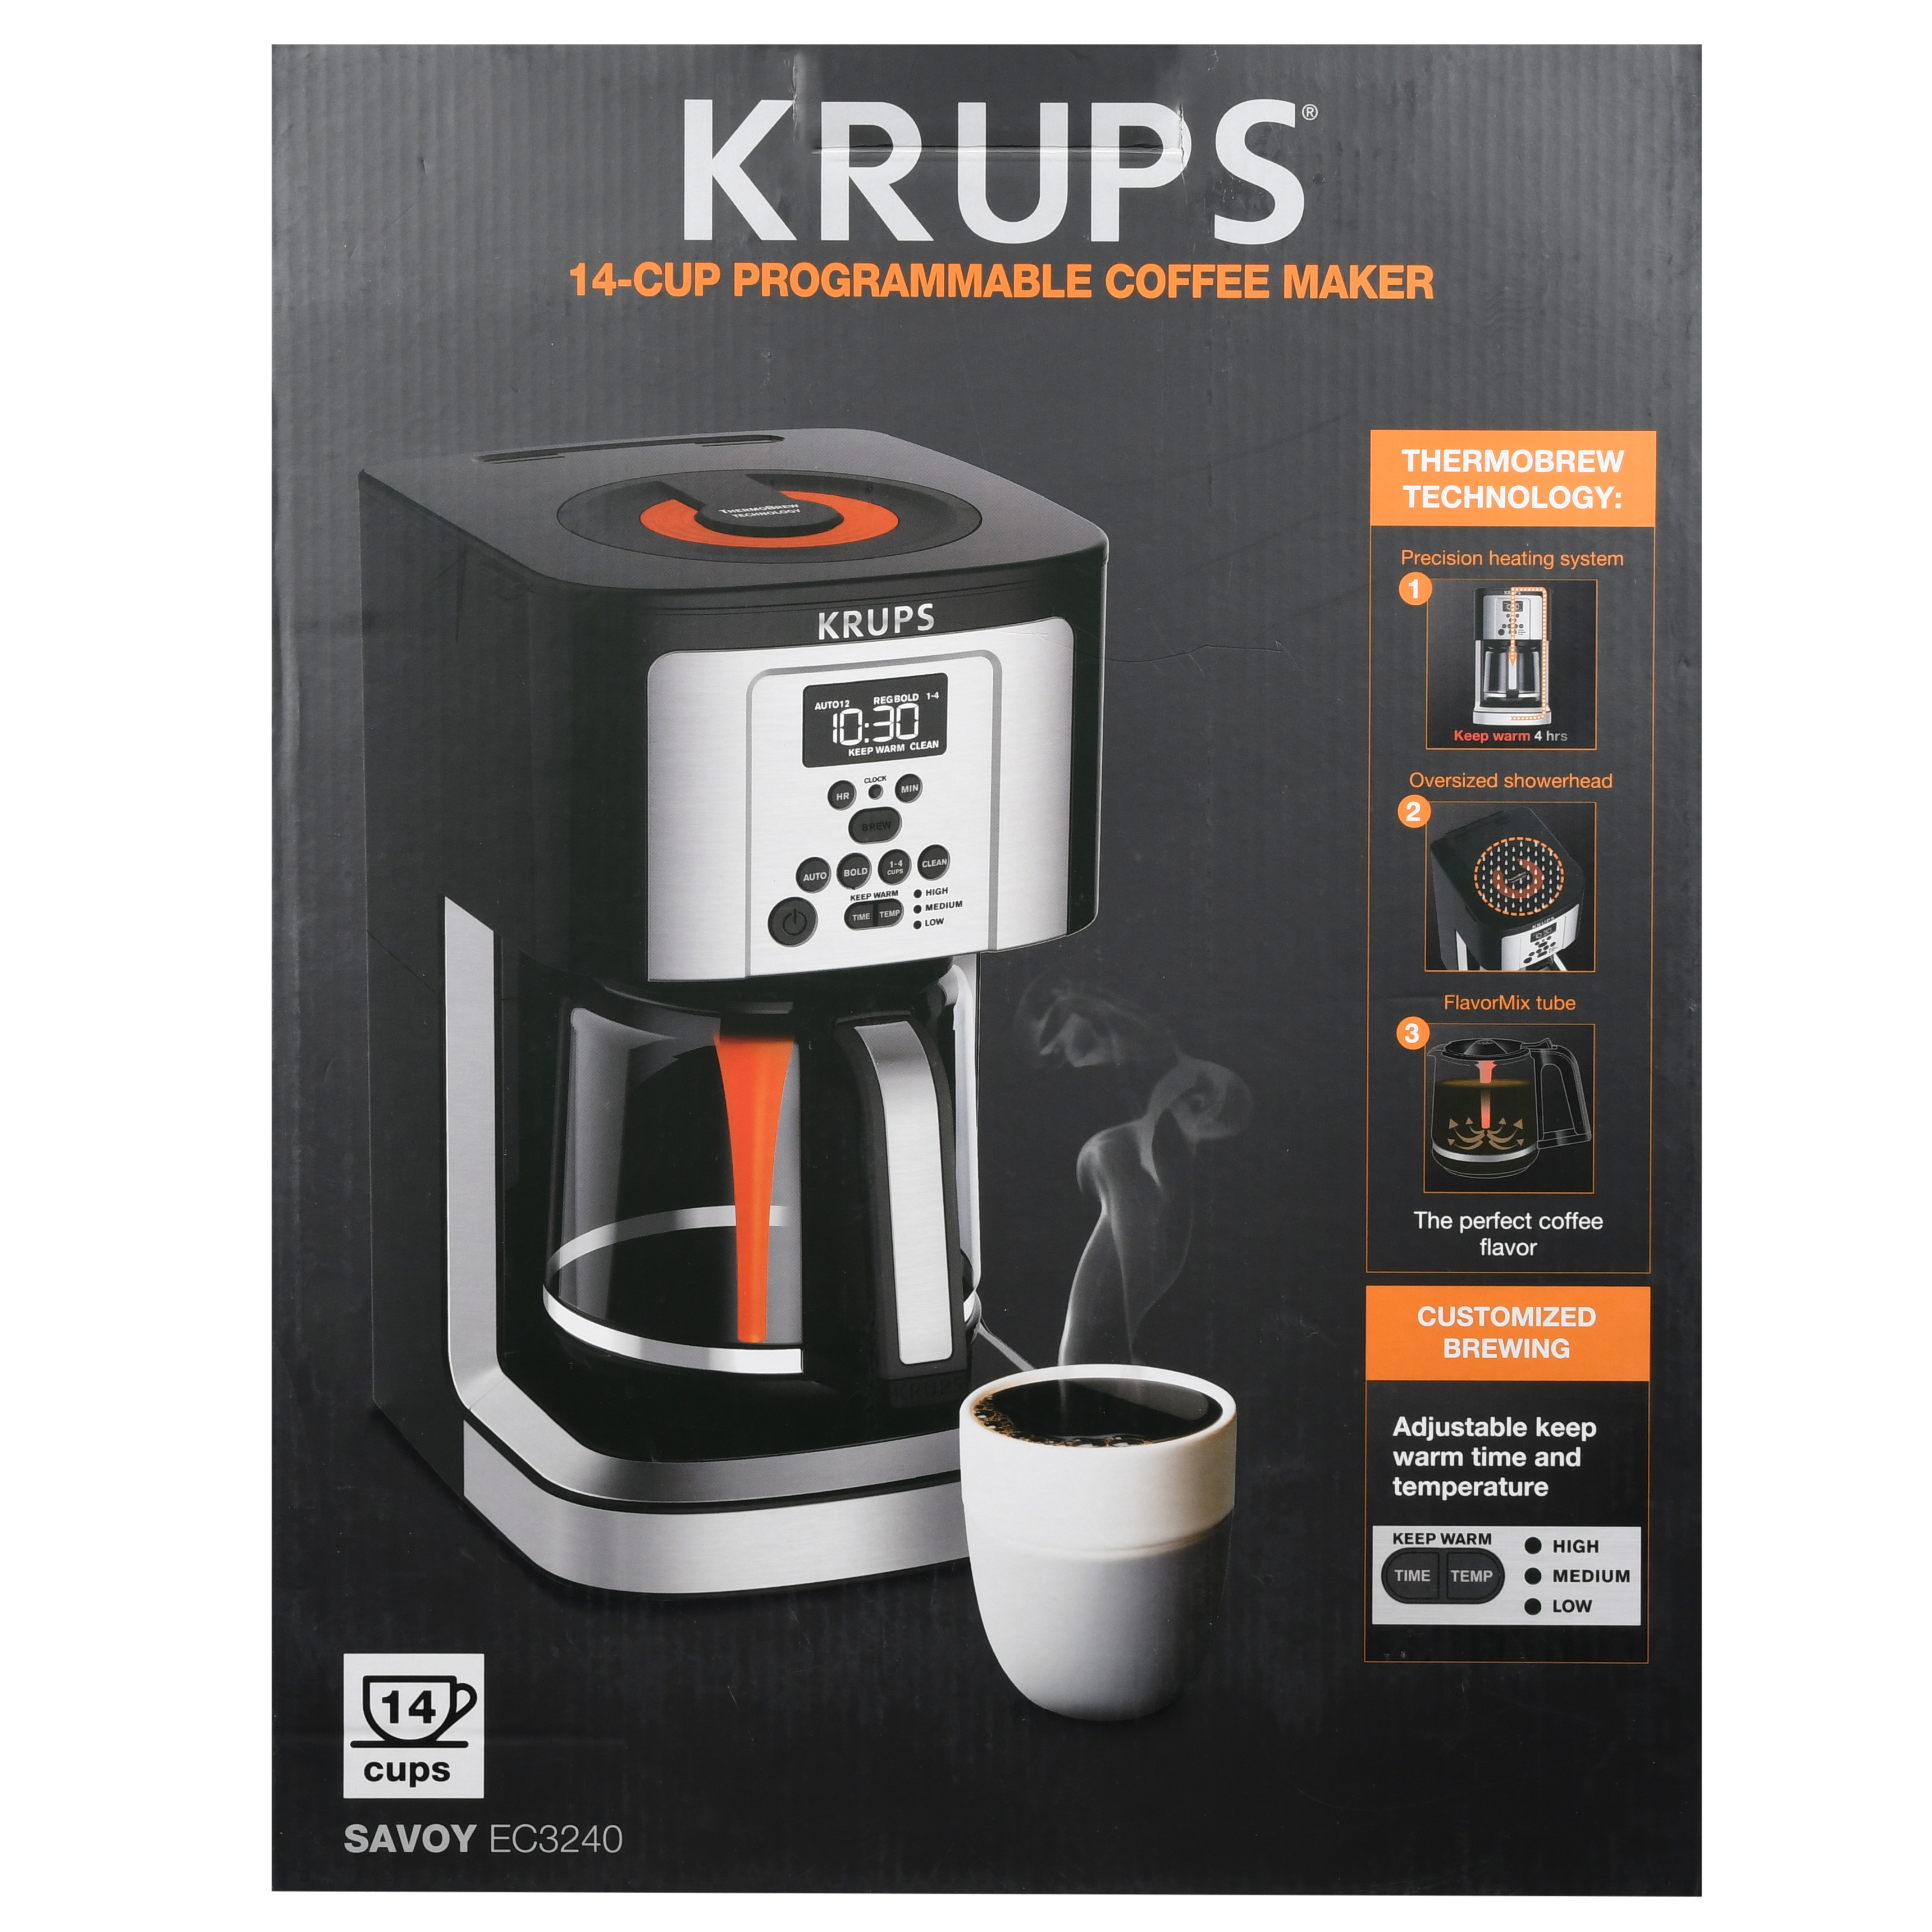 KRUPS EC324 14-CUP THERMOBREW PROGRAMMABLE COFFEE MAKER with large 14-cup capacity, ThermoBrew technology, Dual Auto-Start, Adjustable Keep Warm